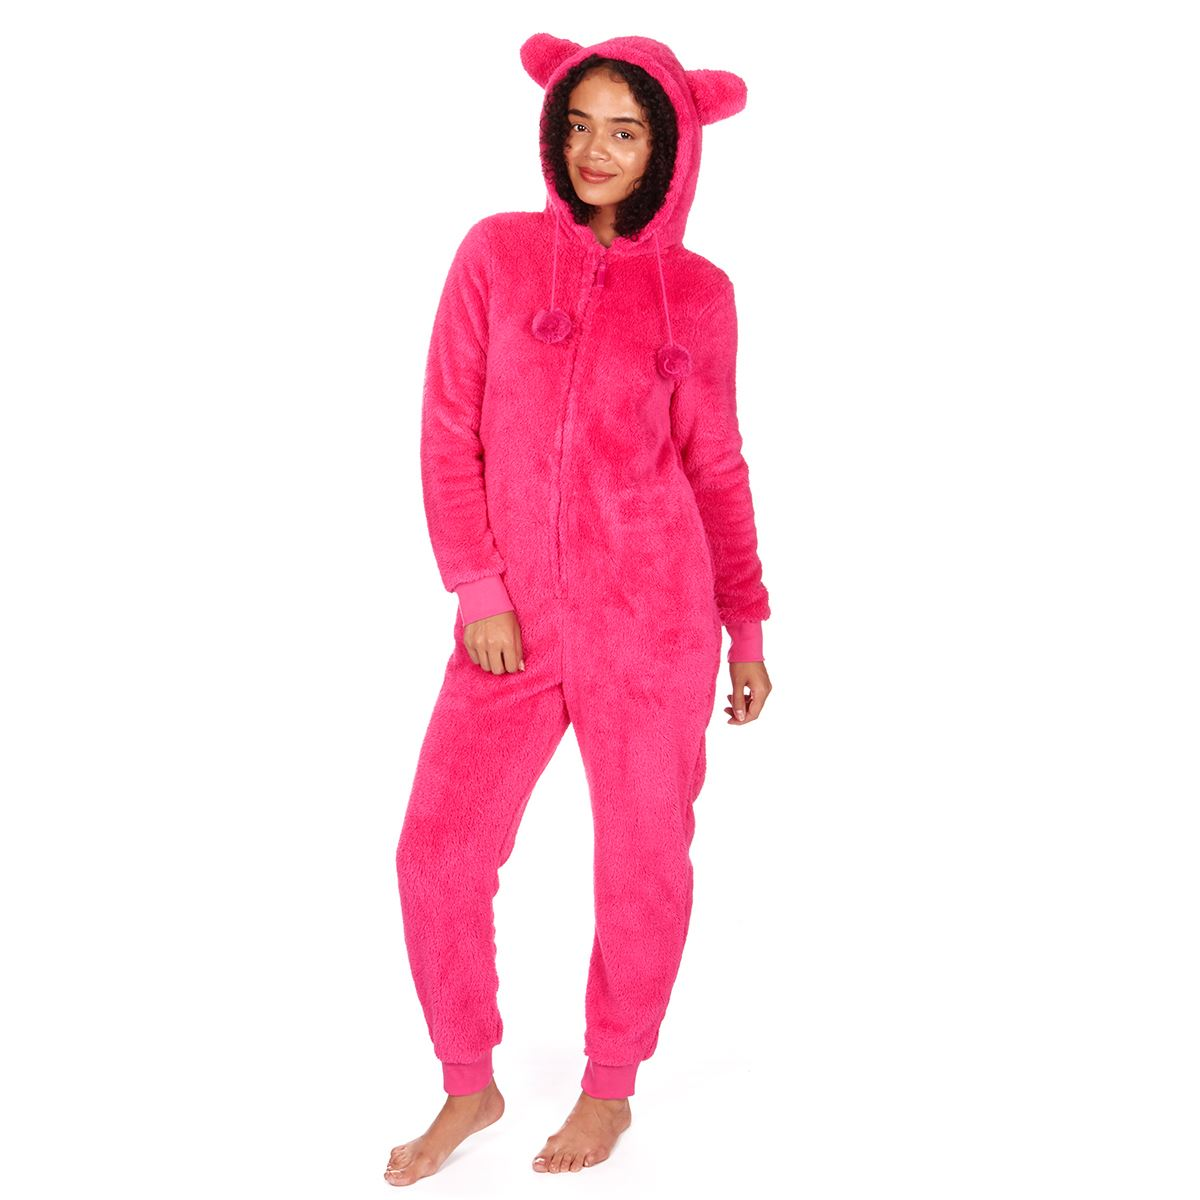 Ladies-Womens-Girls-Fleece-All-In-One-Pyjamas-Outfit-Jumpsuit-Costume-Size-6-18 thumbnail 23